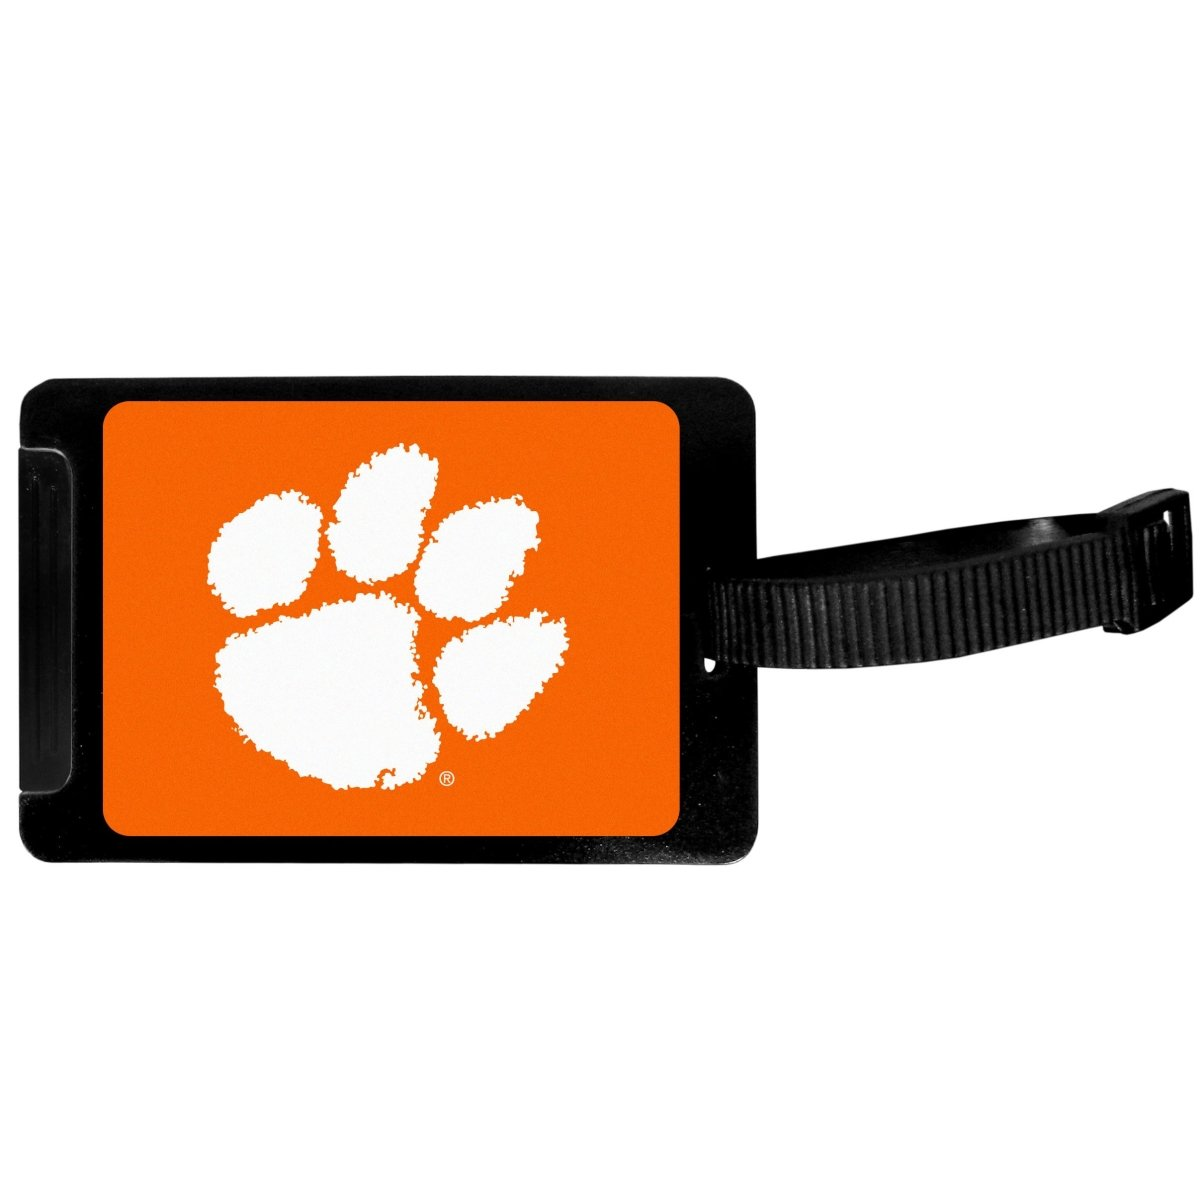 Siskiyou Clemson Tigers Luggage Tag - Mr. Knickerbocker